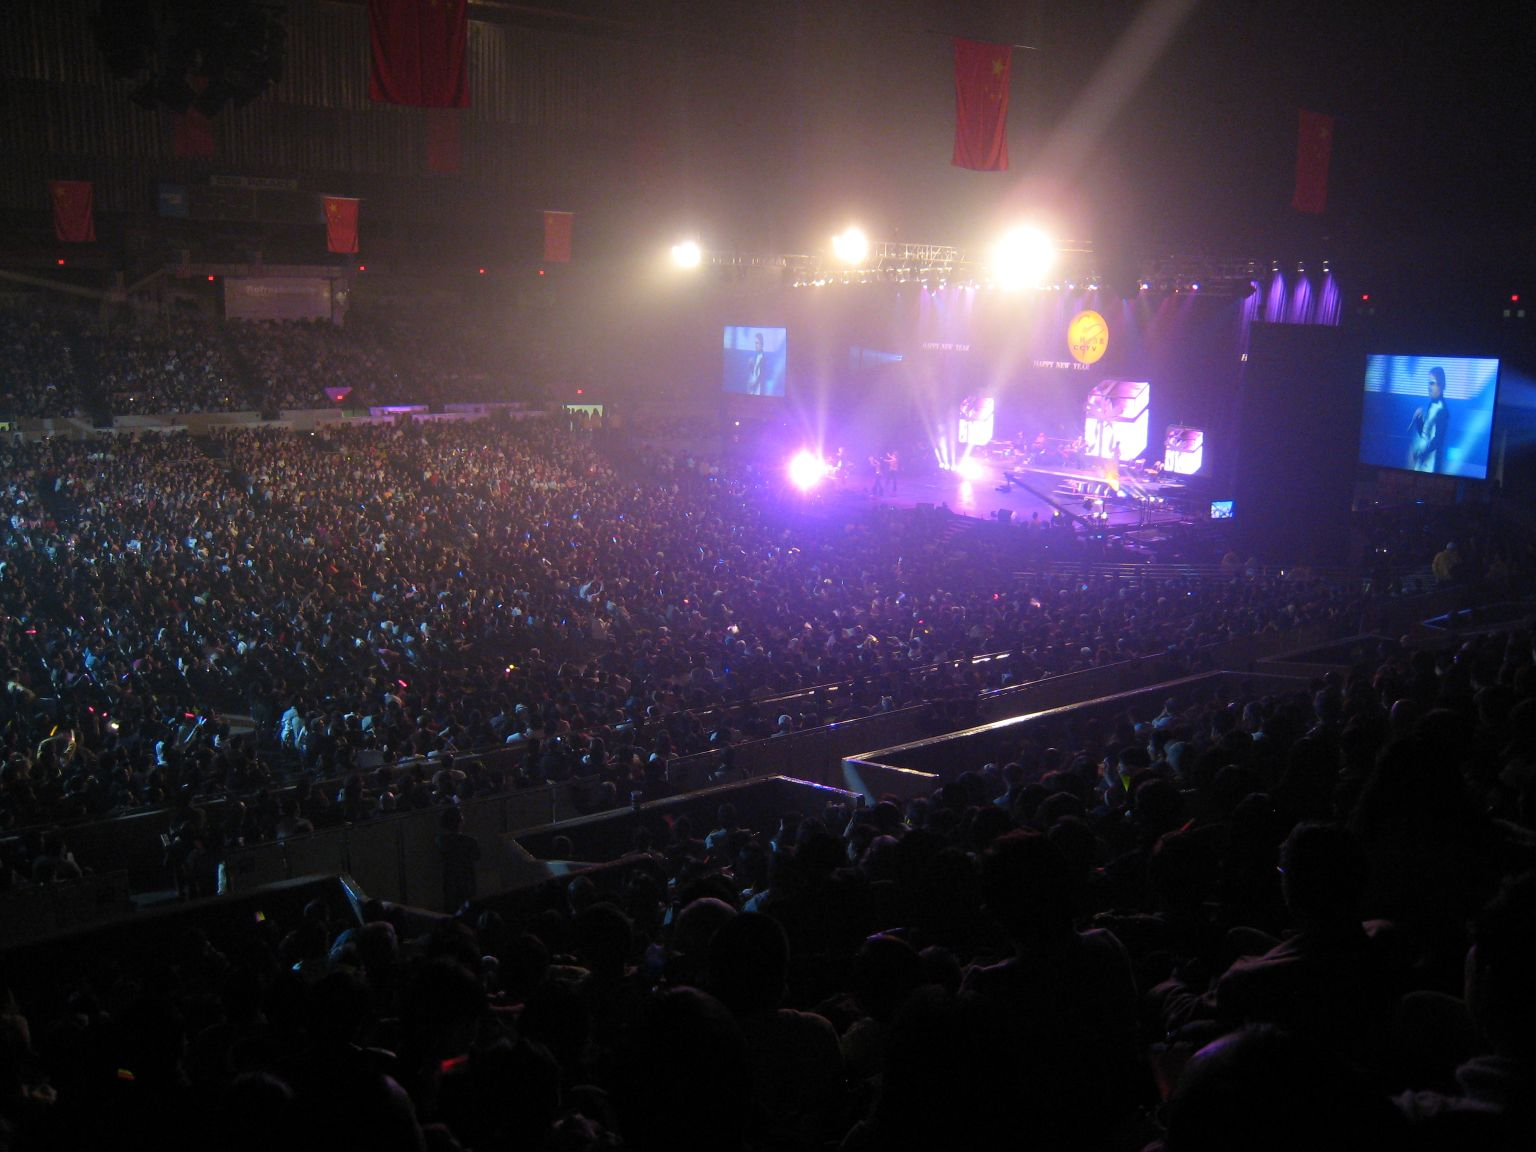 2007-03-03 San Francisco, Cow Palace Sold-Out